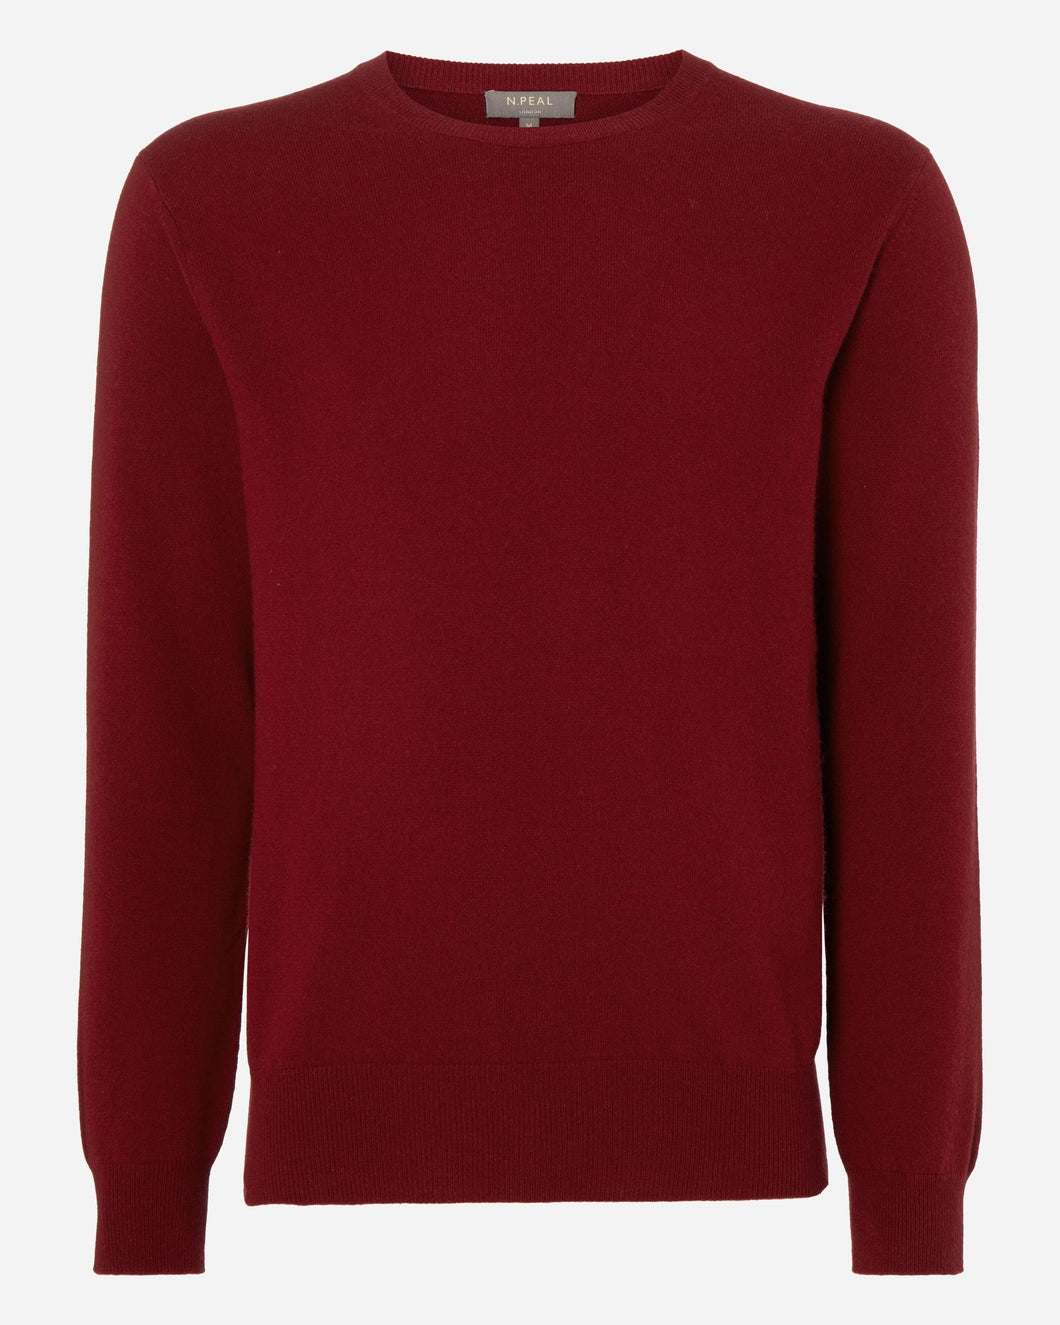 The Oxford Round Neck Cashmere Sweater Enriched Red